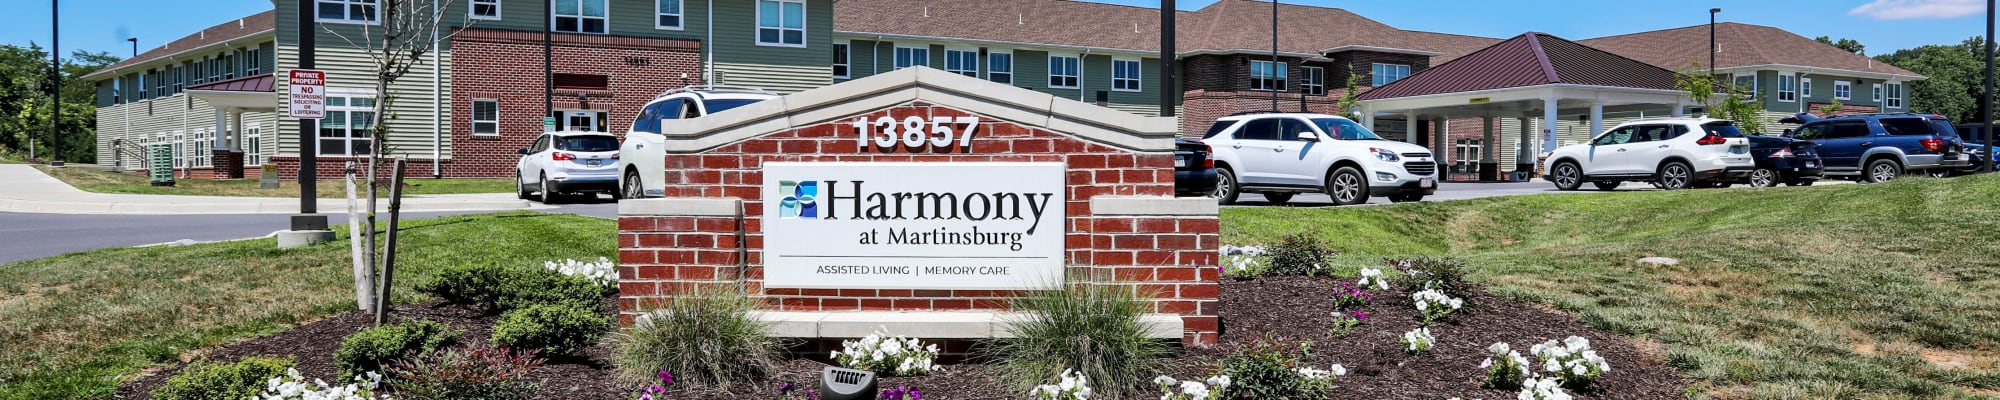 Family Resources at Harmony at Martinsburg in Martinsburg, West Virginia